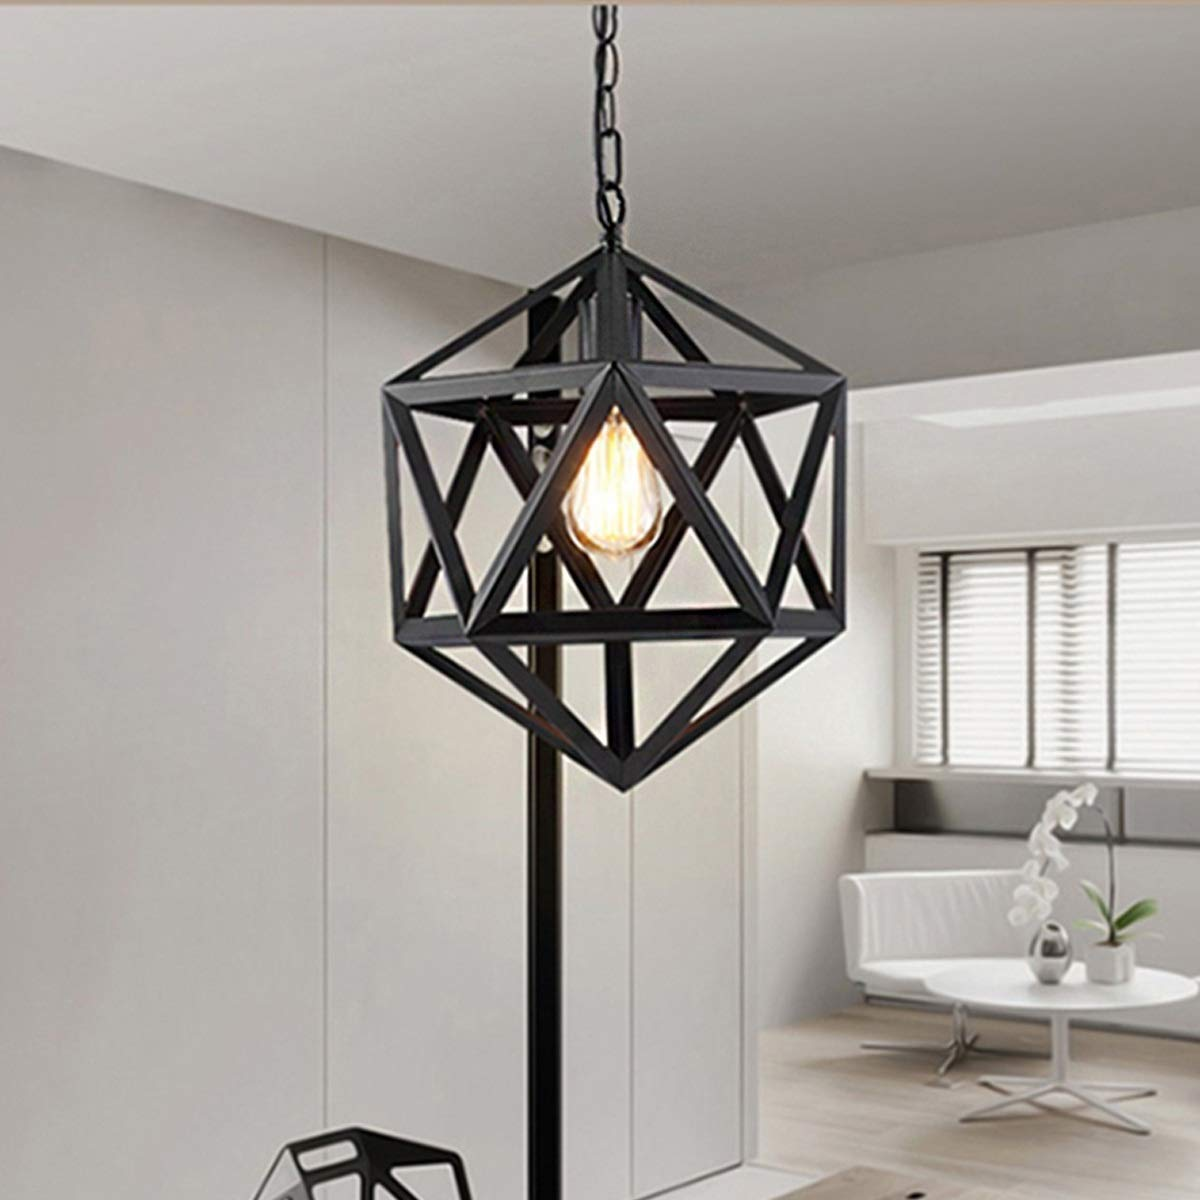 NANGE Retro Industrial Chandelier,Wrought Iron Creative Personality Polyhedral Diamond Pendant Lights,Kitchen Island Table Dining Room Hanging LampE27(Without Light Source) by NANGE (Image #1)